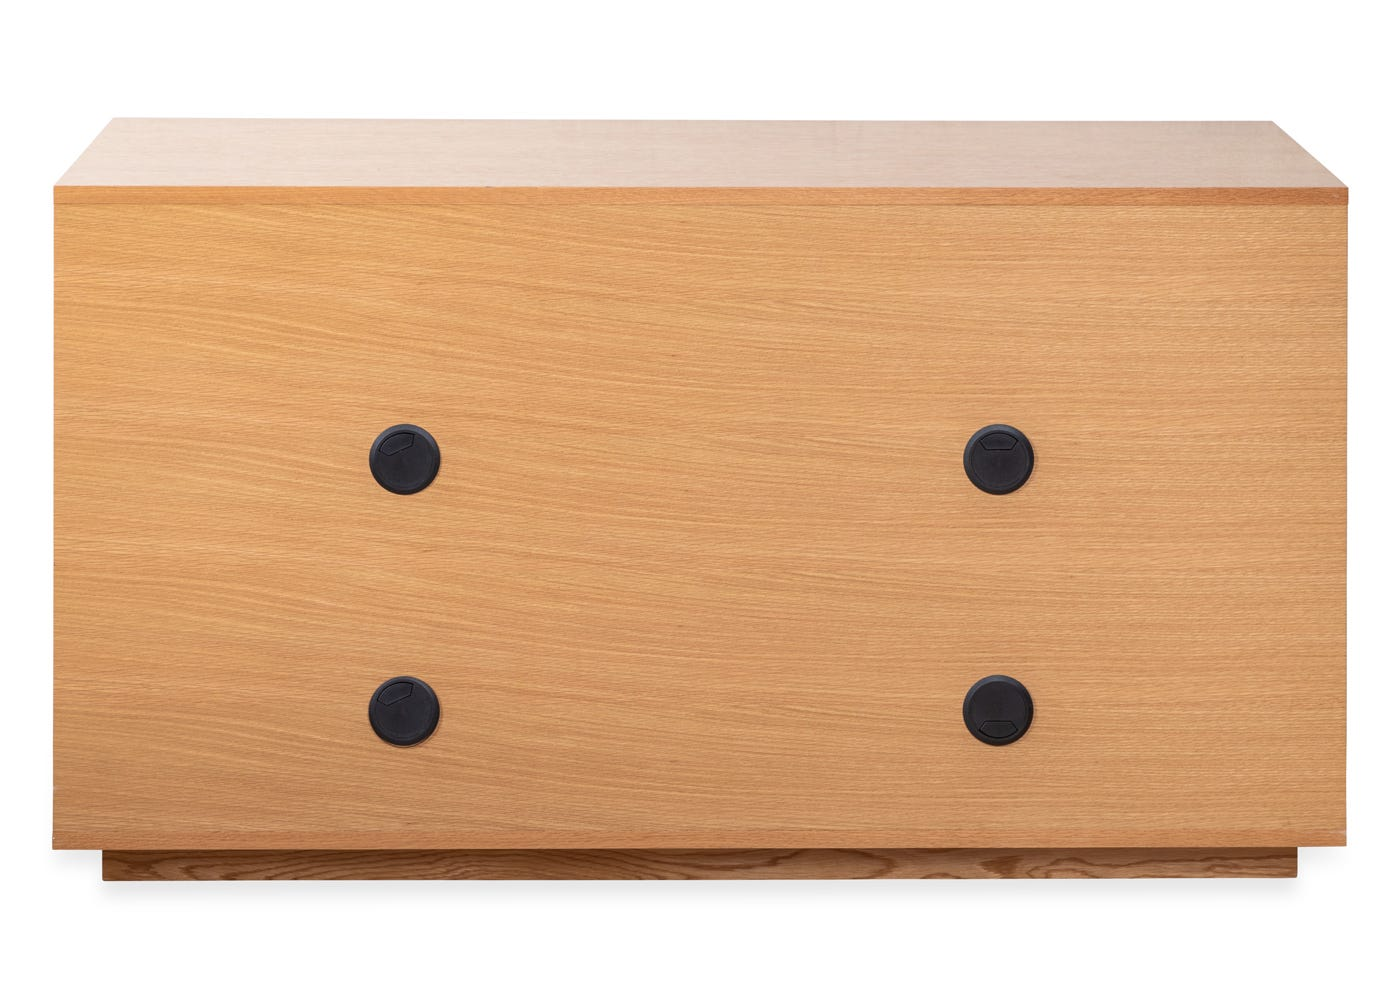 As shown: Verona small sideboard in oak - rear profile cable management system holes